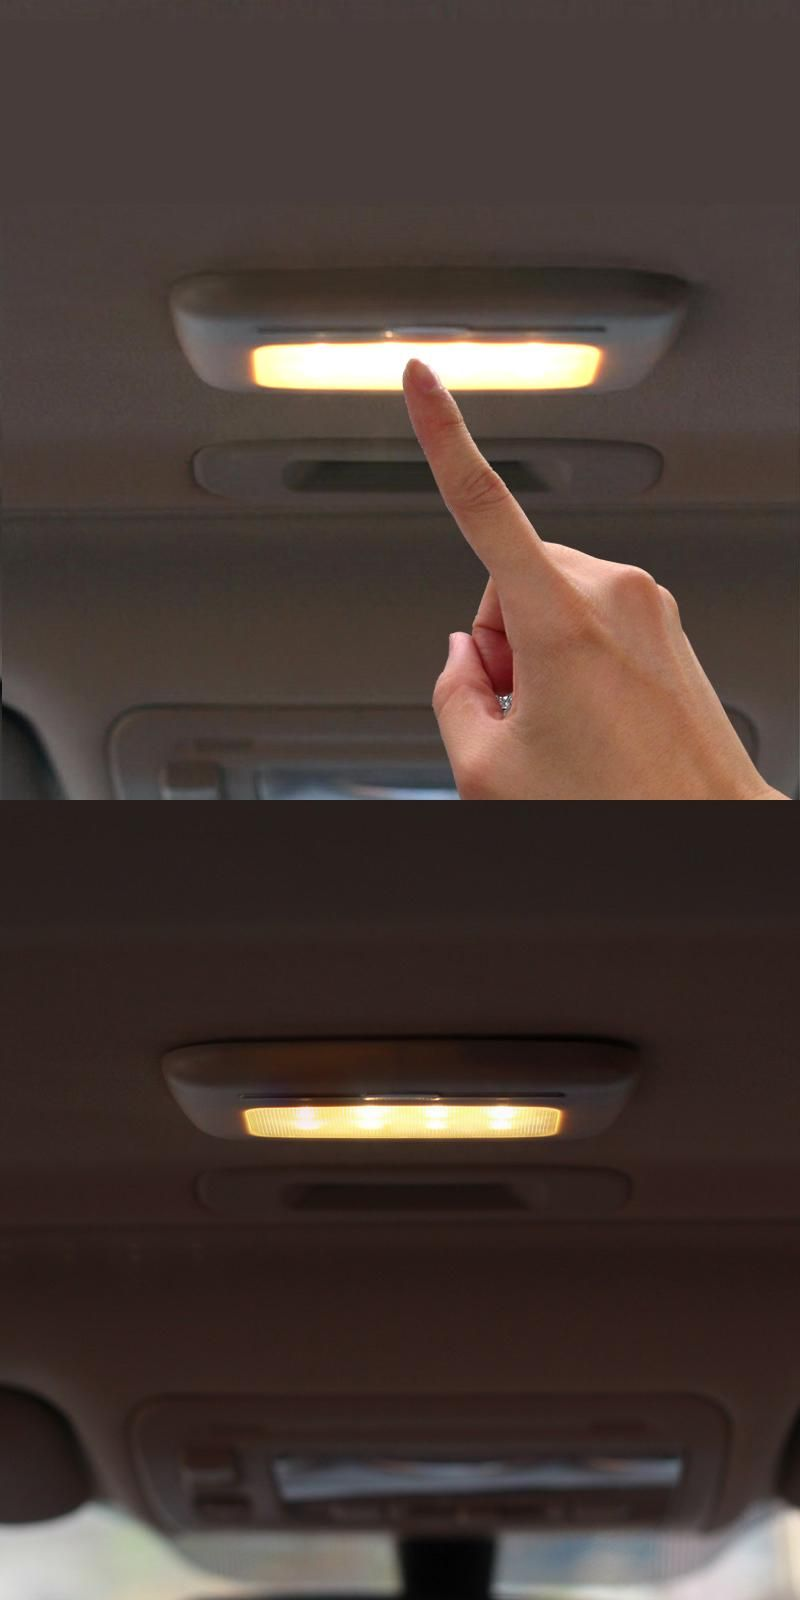 Led White Car Reding Lamp Vehicle Indoor Roof Ceiling Lamp Interior Decorative Square Dome Reading Light Car Styling Qp17 Roof Ceiling Reading Light Car Lights